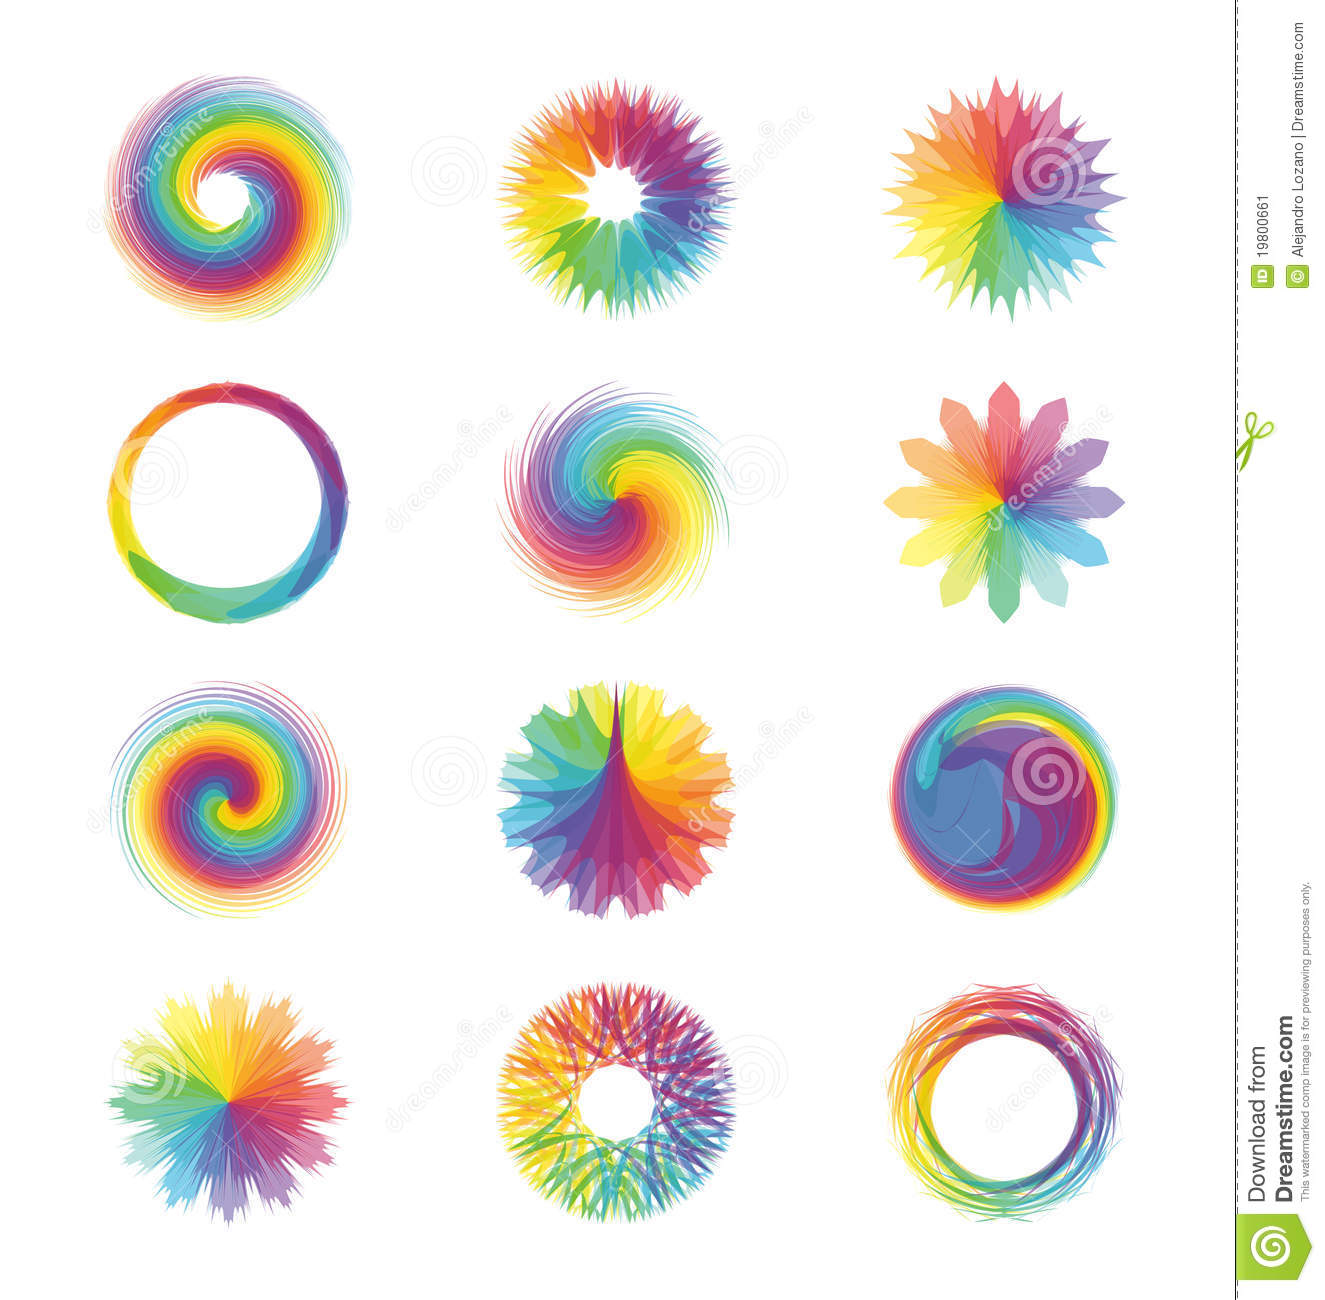 Colorful Abstract Designs Stock Image Image 19800661